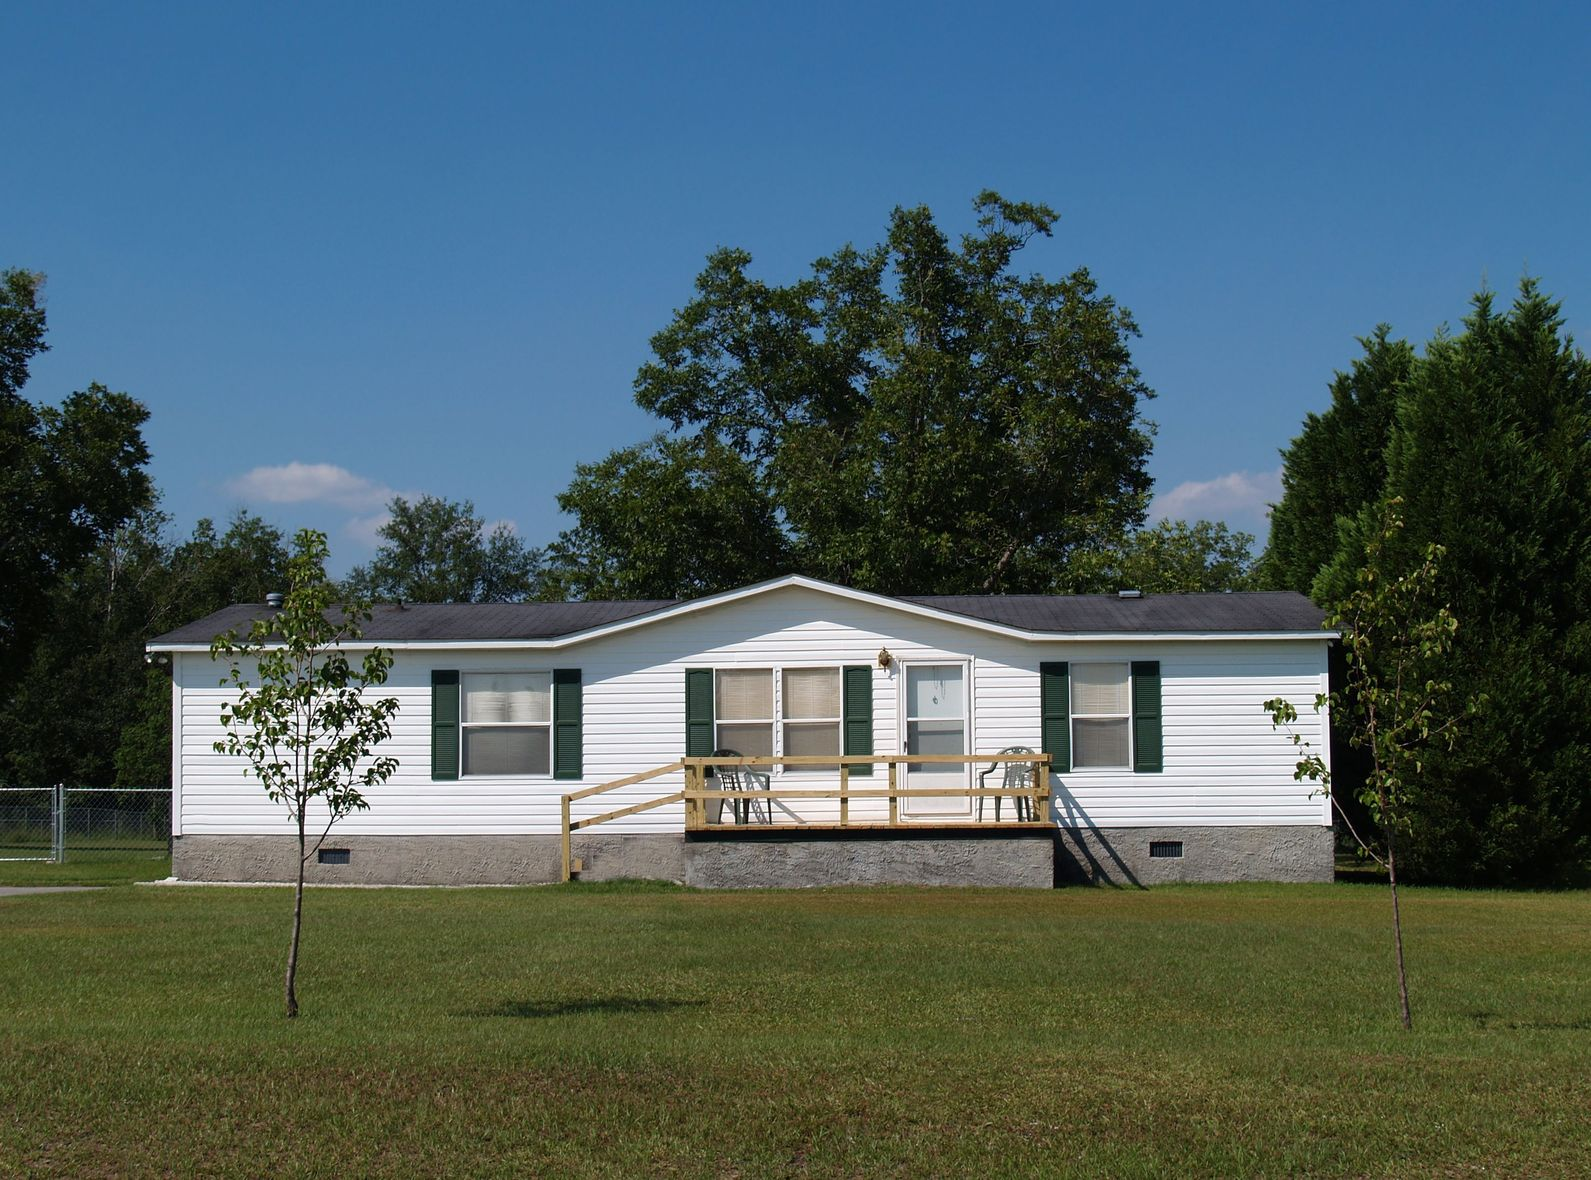 McKinney, TX. Mobile Home Insurance